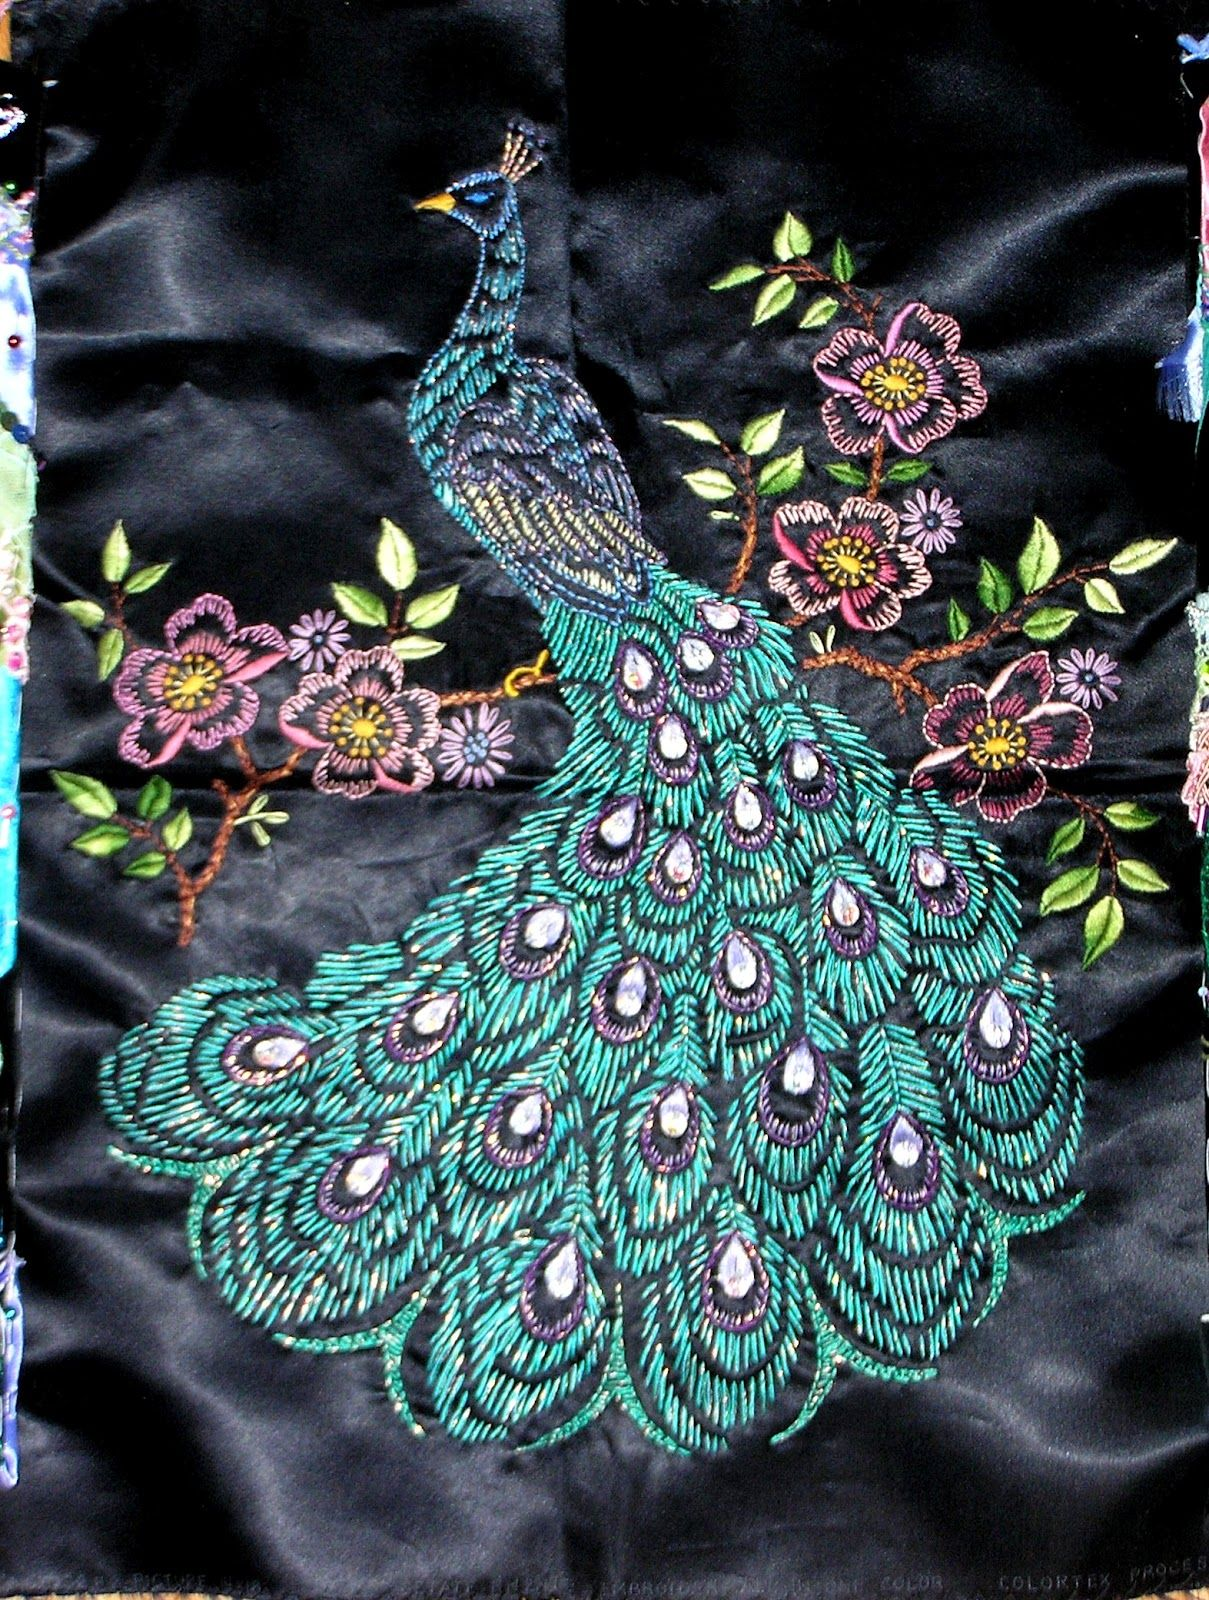 Crazy Quilting And Embroidery Blog By Pamela Kellogg Of Kitty And Me  Designs: The Peacock